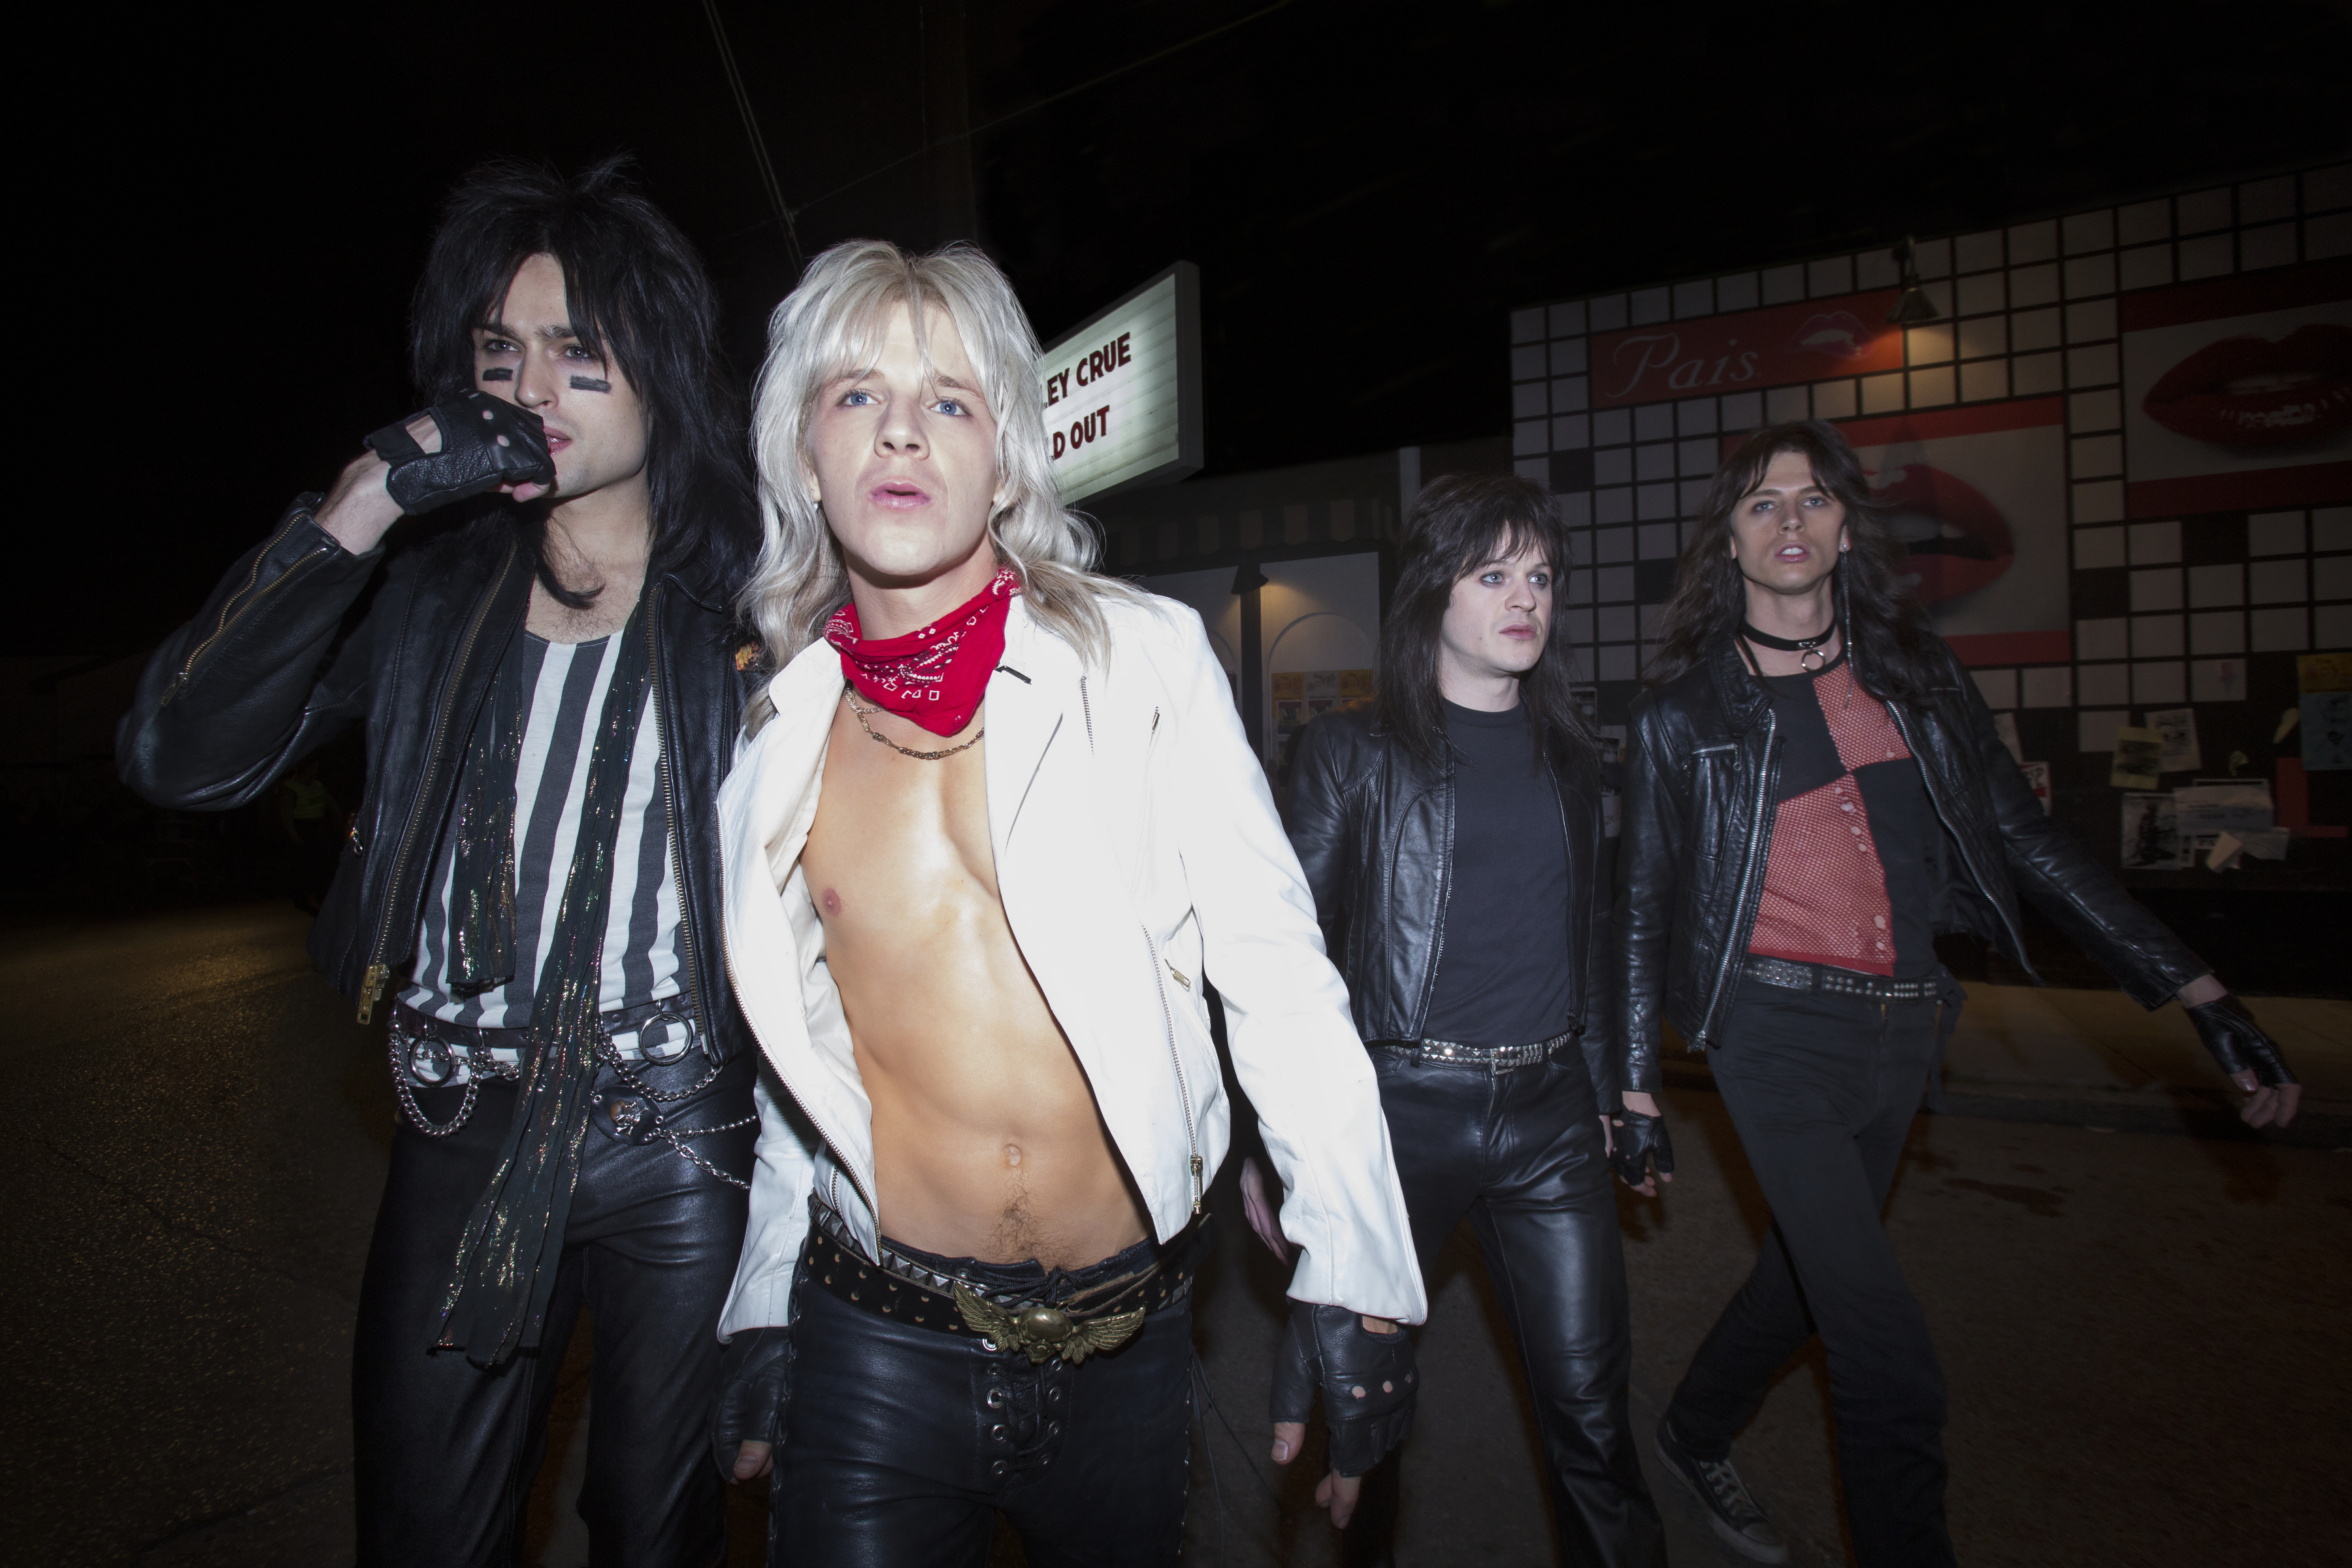 The Dirt Review: Netflix Gives Mötley Crüe Their Own Bohemian